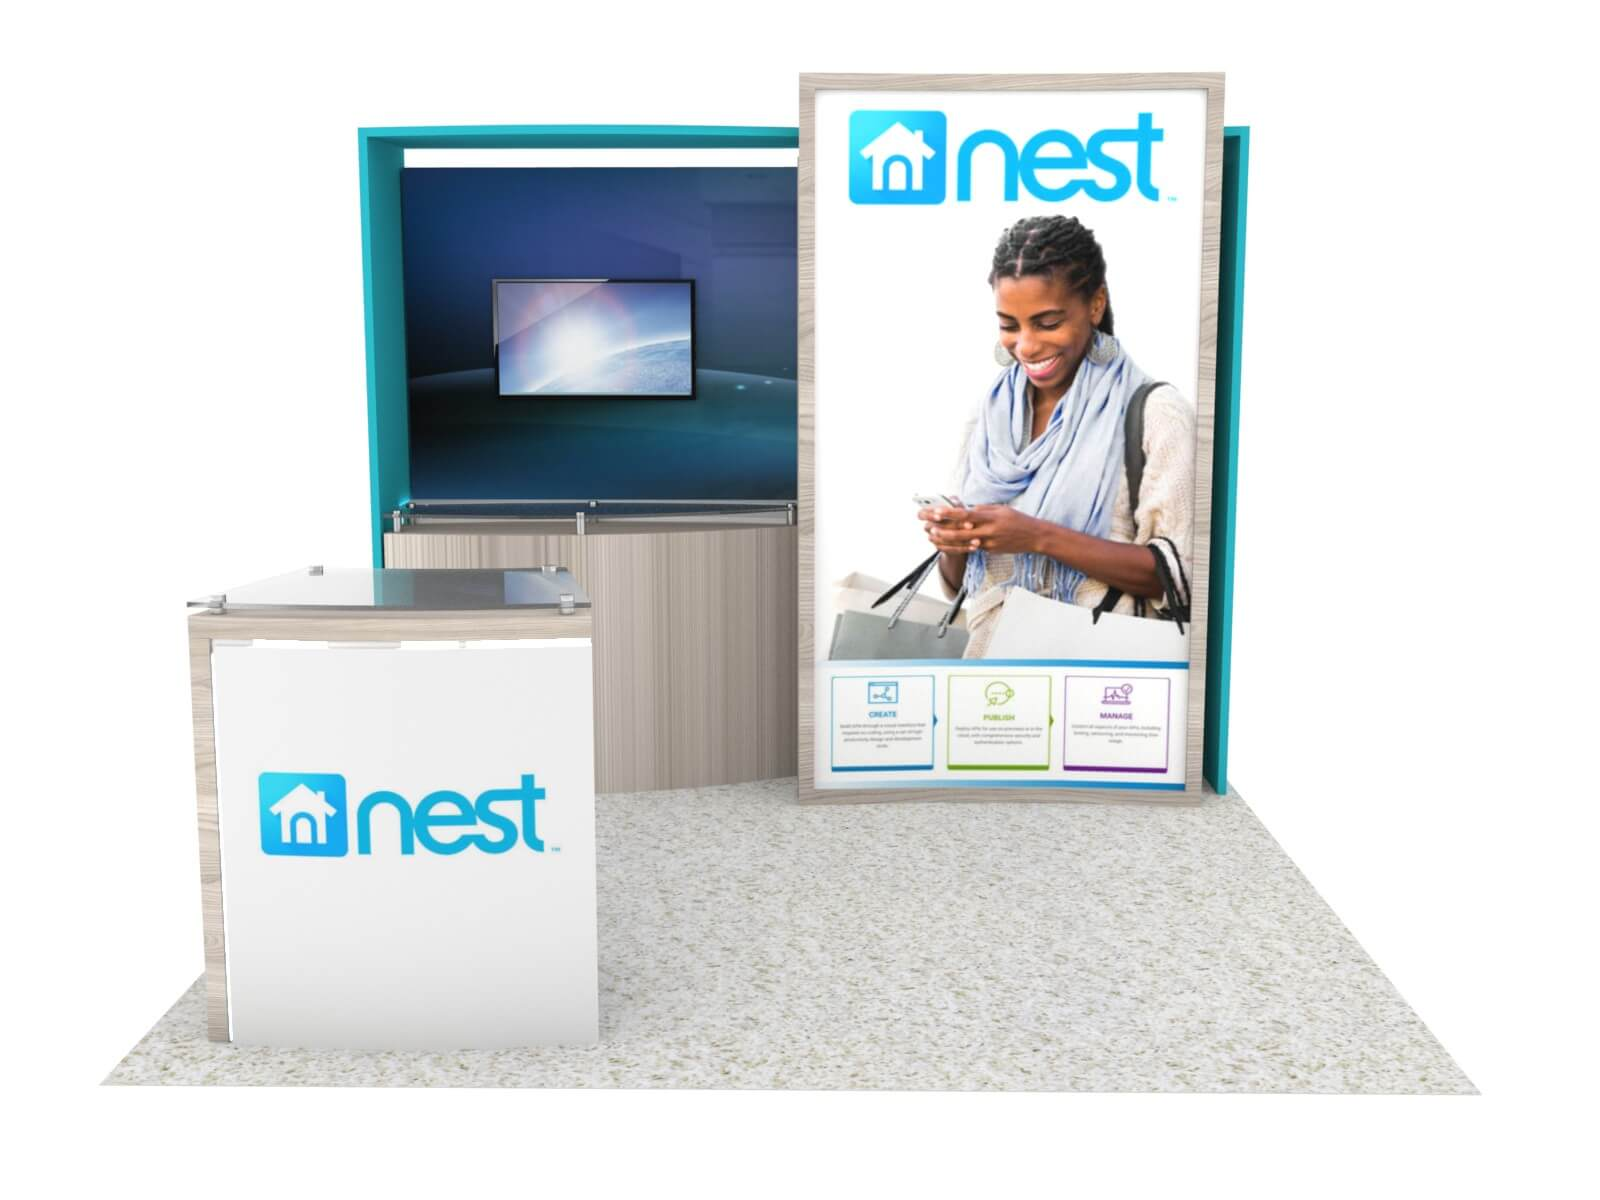 ECO-1124 Sustainable Trade Show Display - image 2